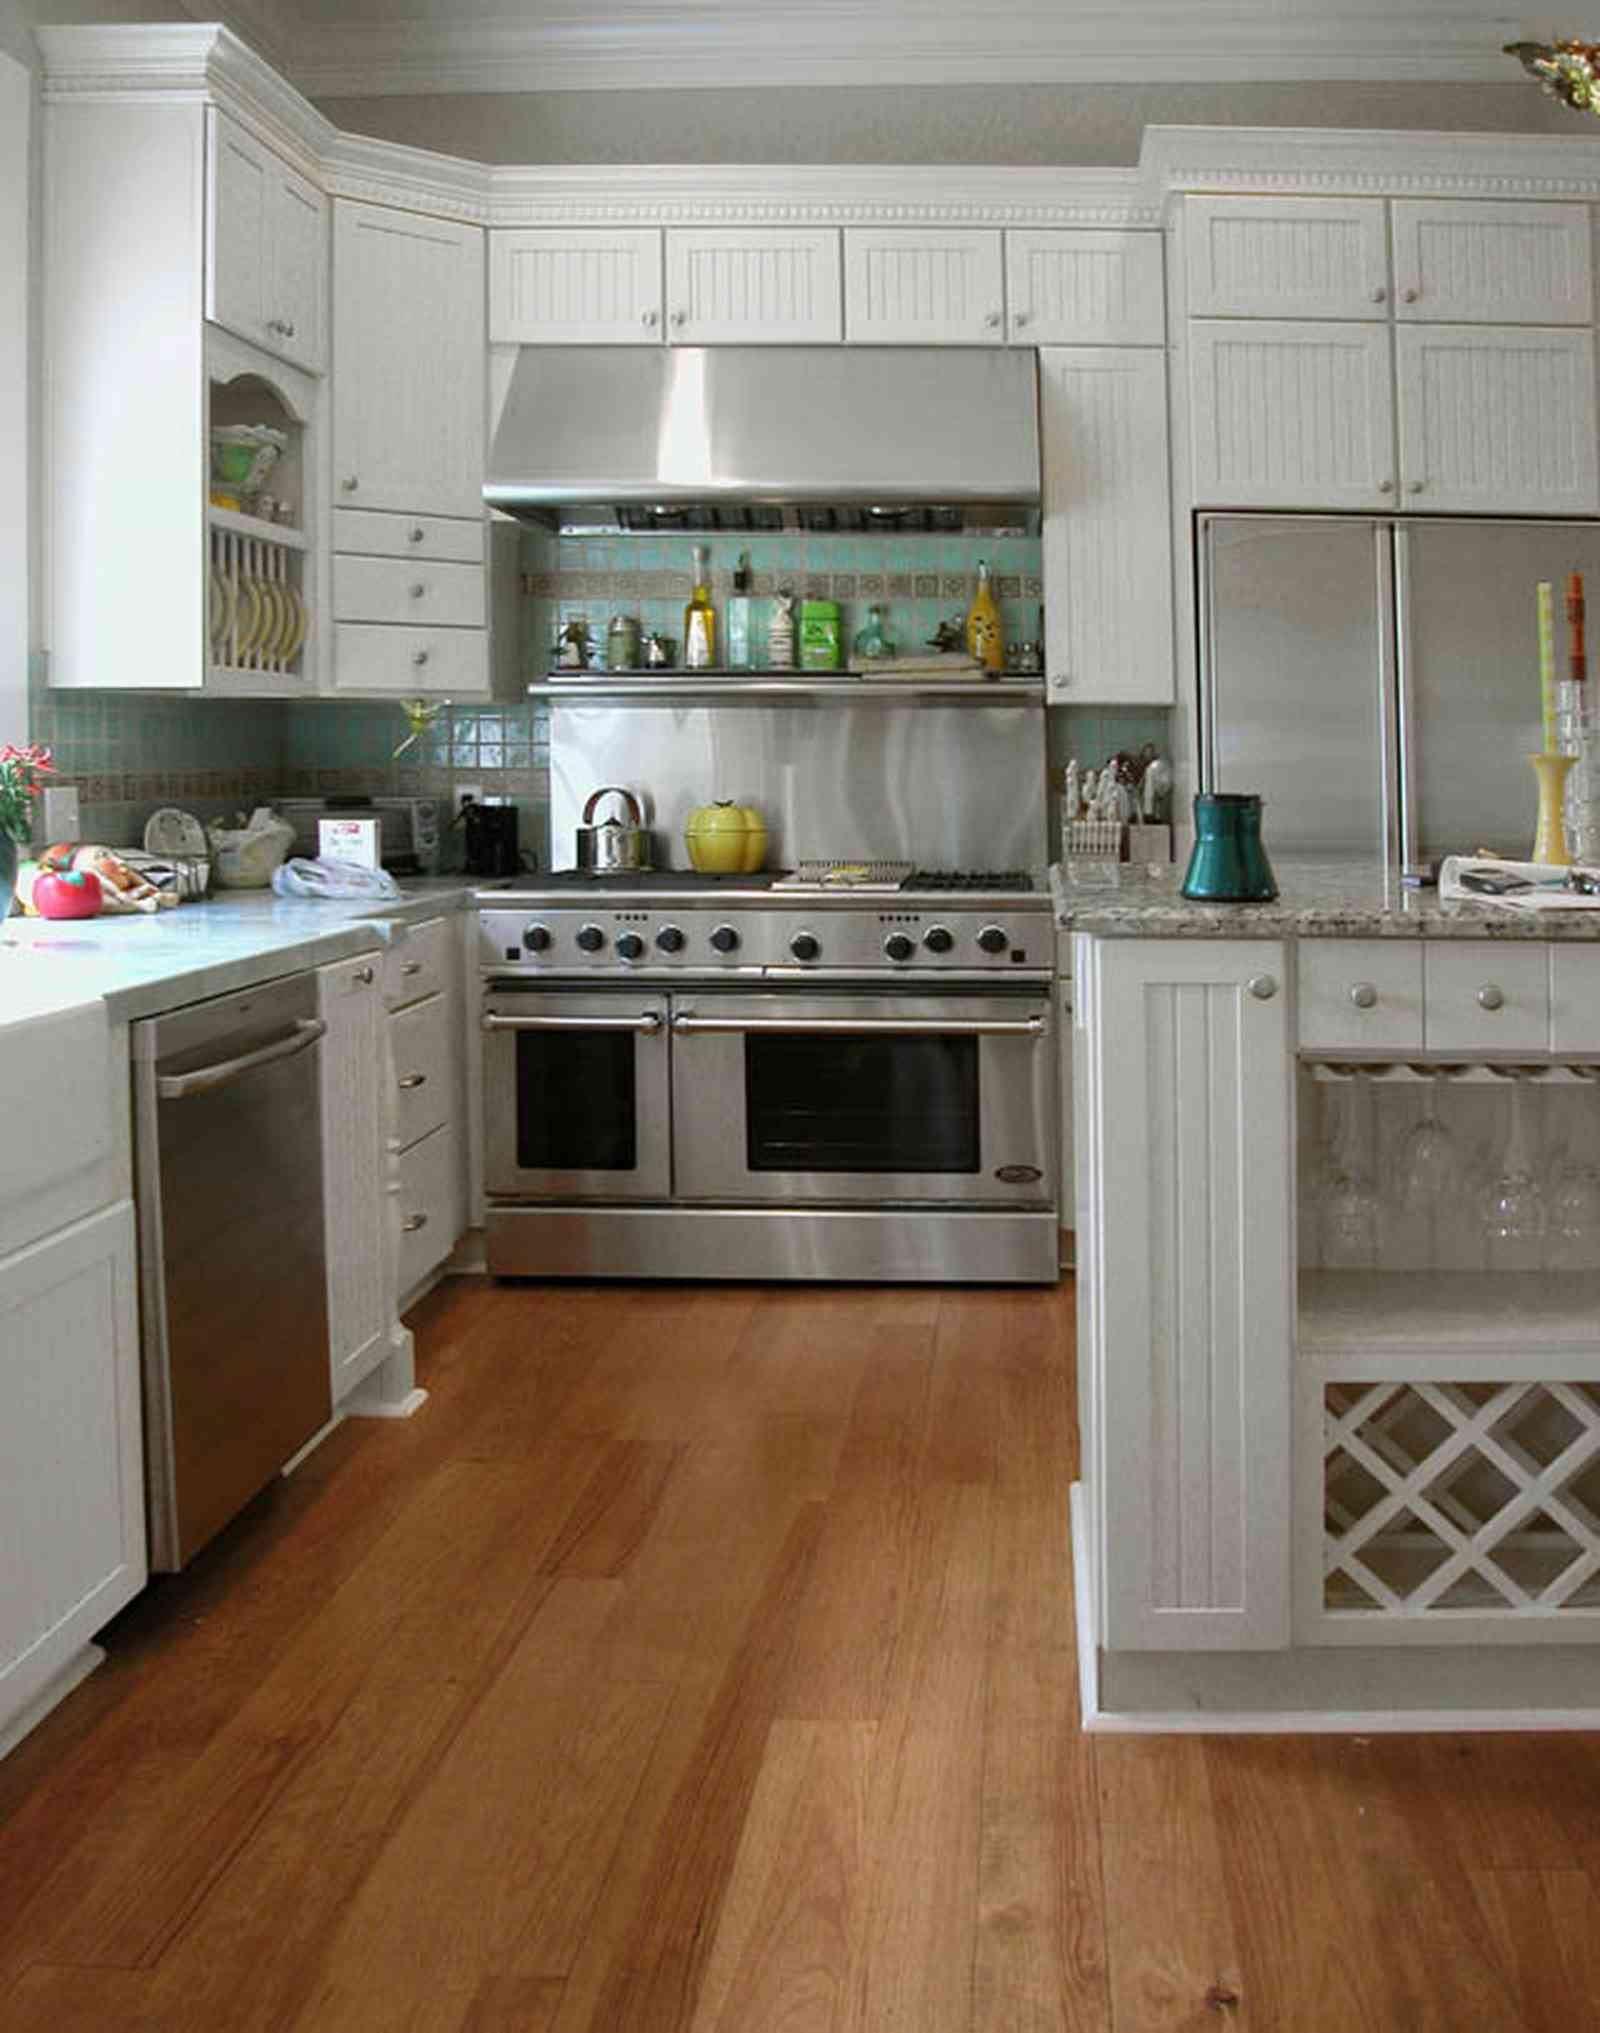 Pensacola:-Seville-Historic-District:-202-Cevallos-Street_17.jpg:  wine rack, heart pine floors, stainless steel stove, oven, range, kitchen cabines, green tile, victorian cottage